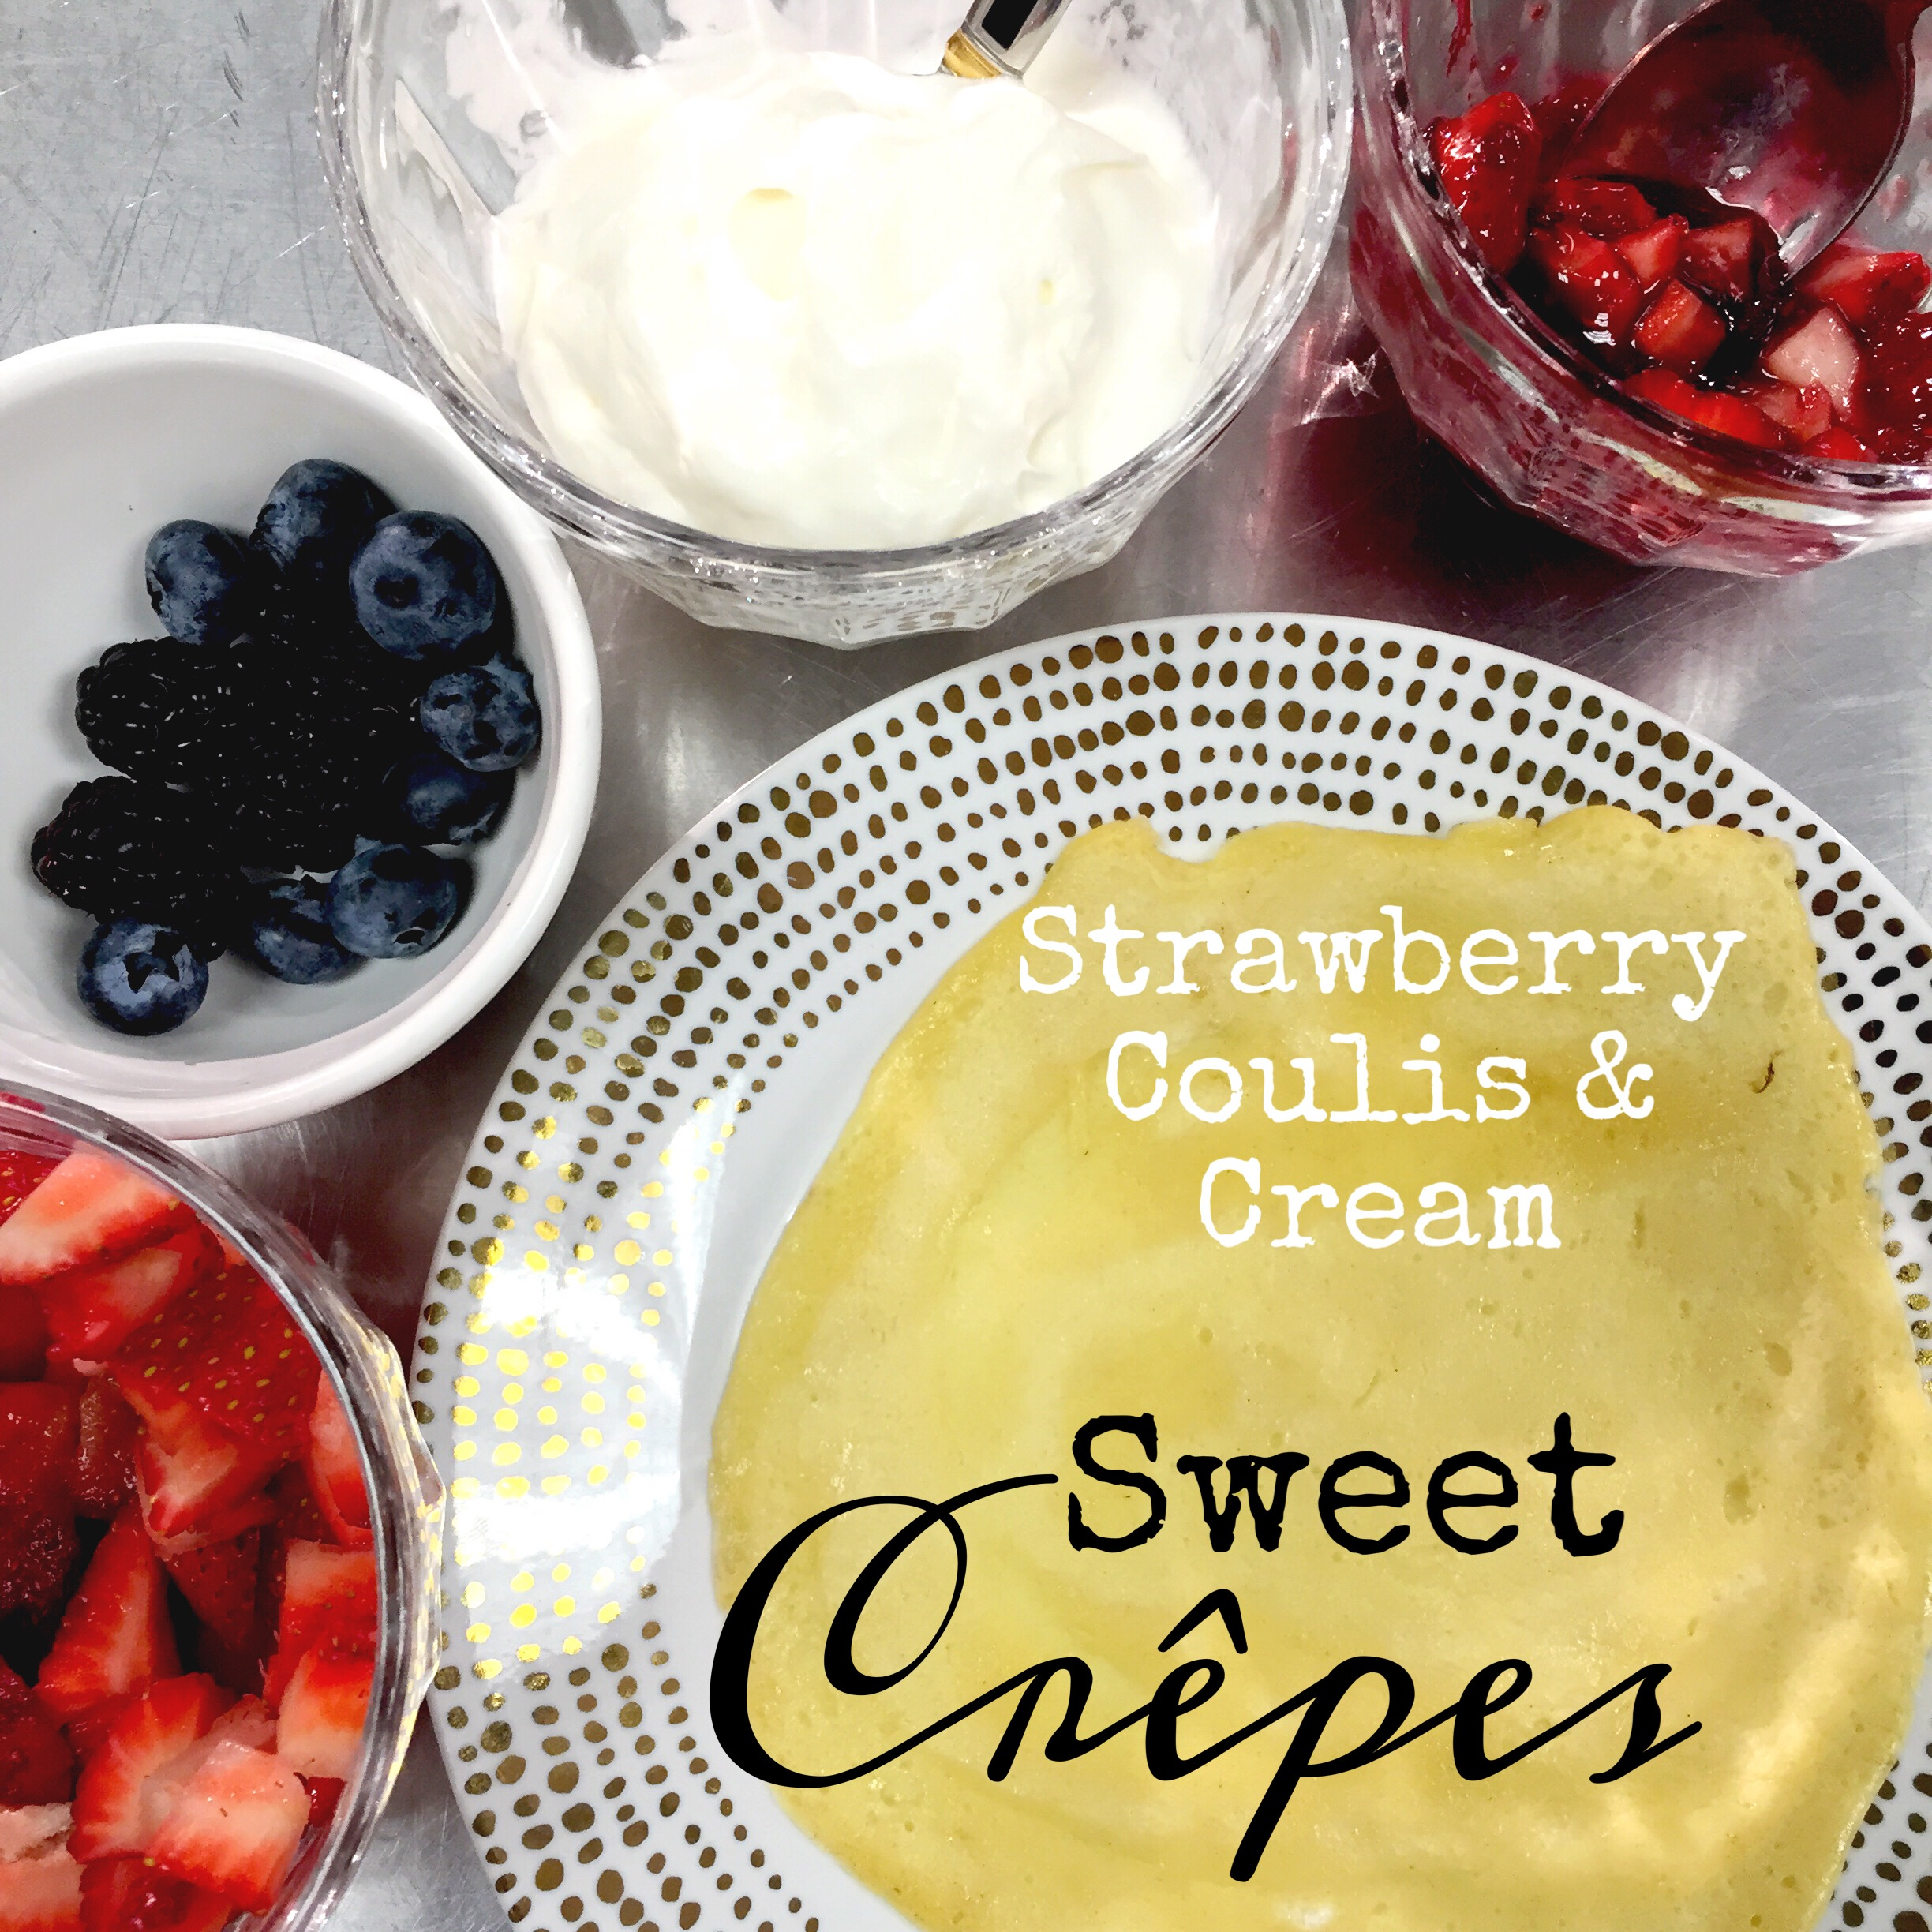 Strawberry Coulis & Cream Crepe Filling. ChefShayna.com